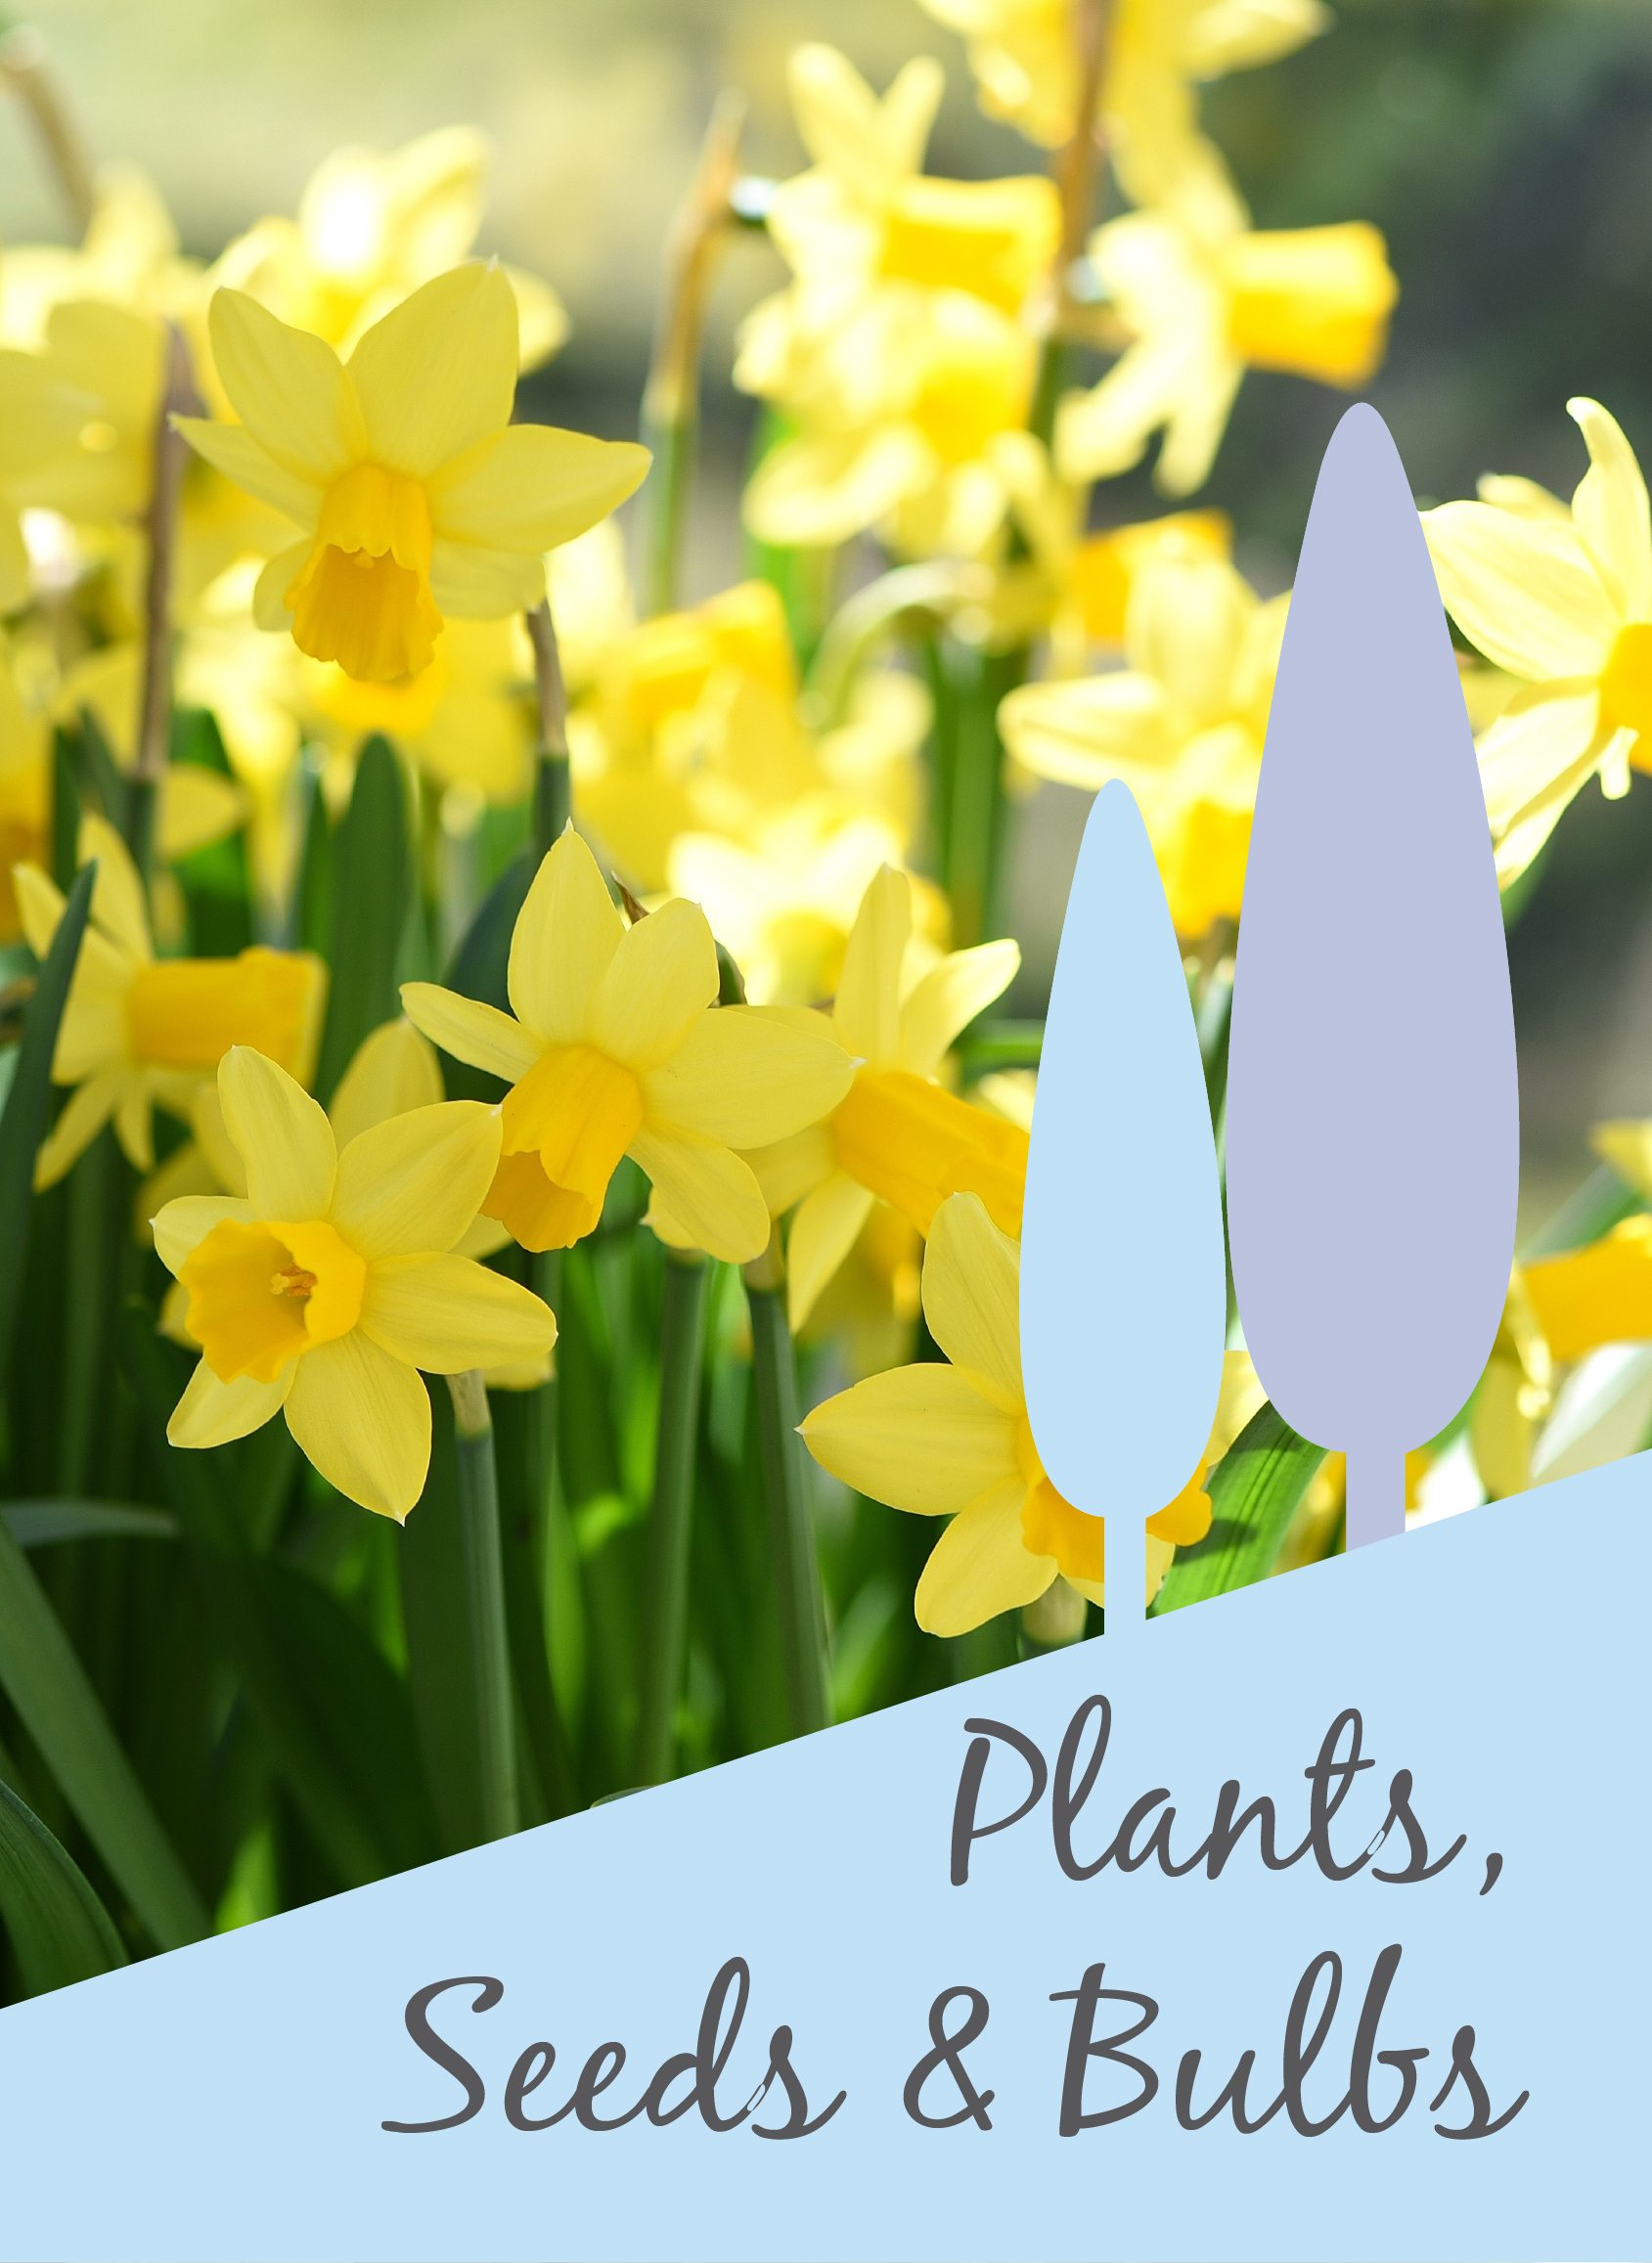 Link to our plants seeds bulbs page